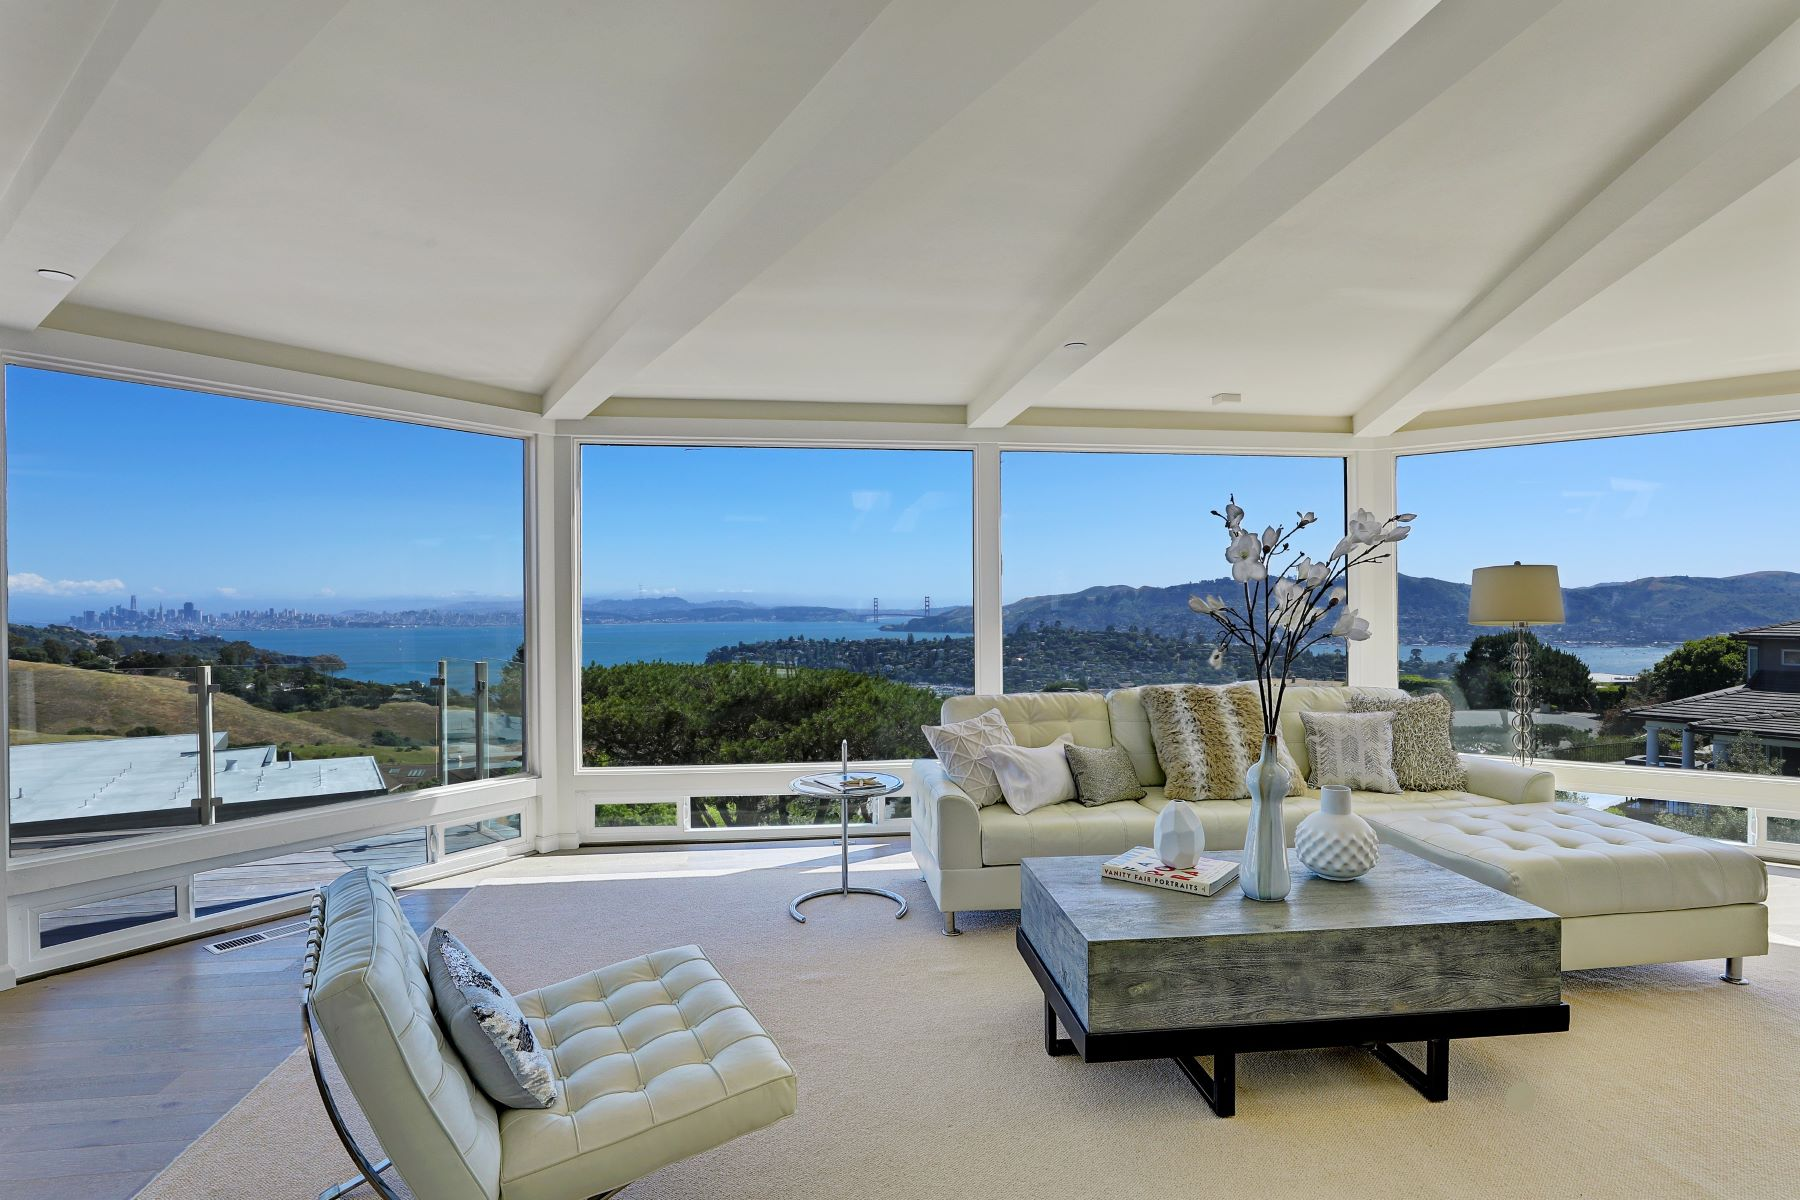 Single Family Home for Sale at Expansive, Unobstructed Views! 2 Heathcliff Dr Tiburon, California 94920 United States